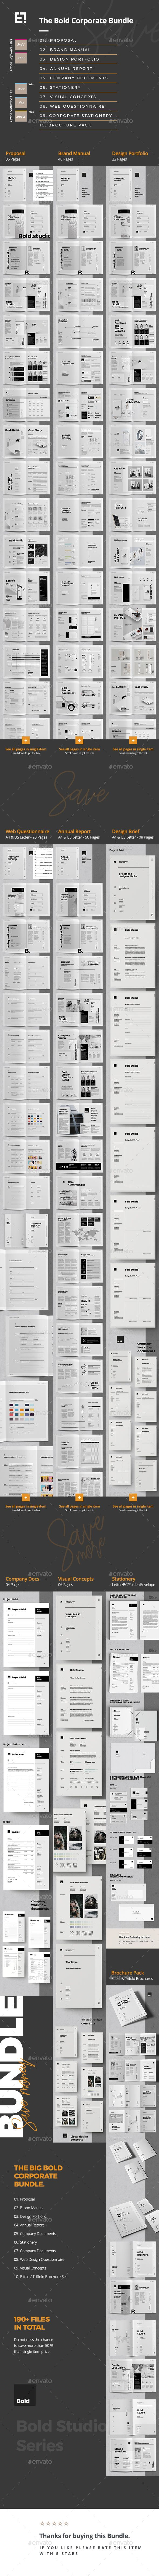 Company Bundle — InDesign INDD #minimal #trend • Available here ...